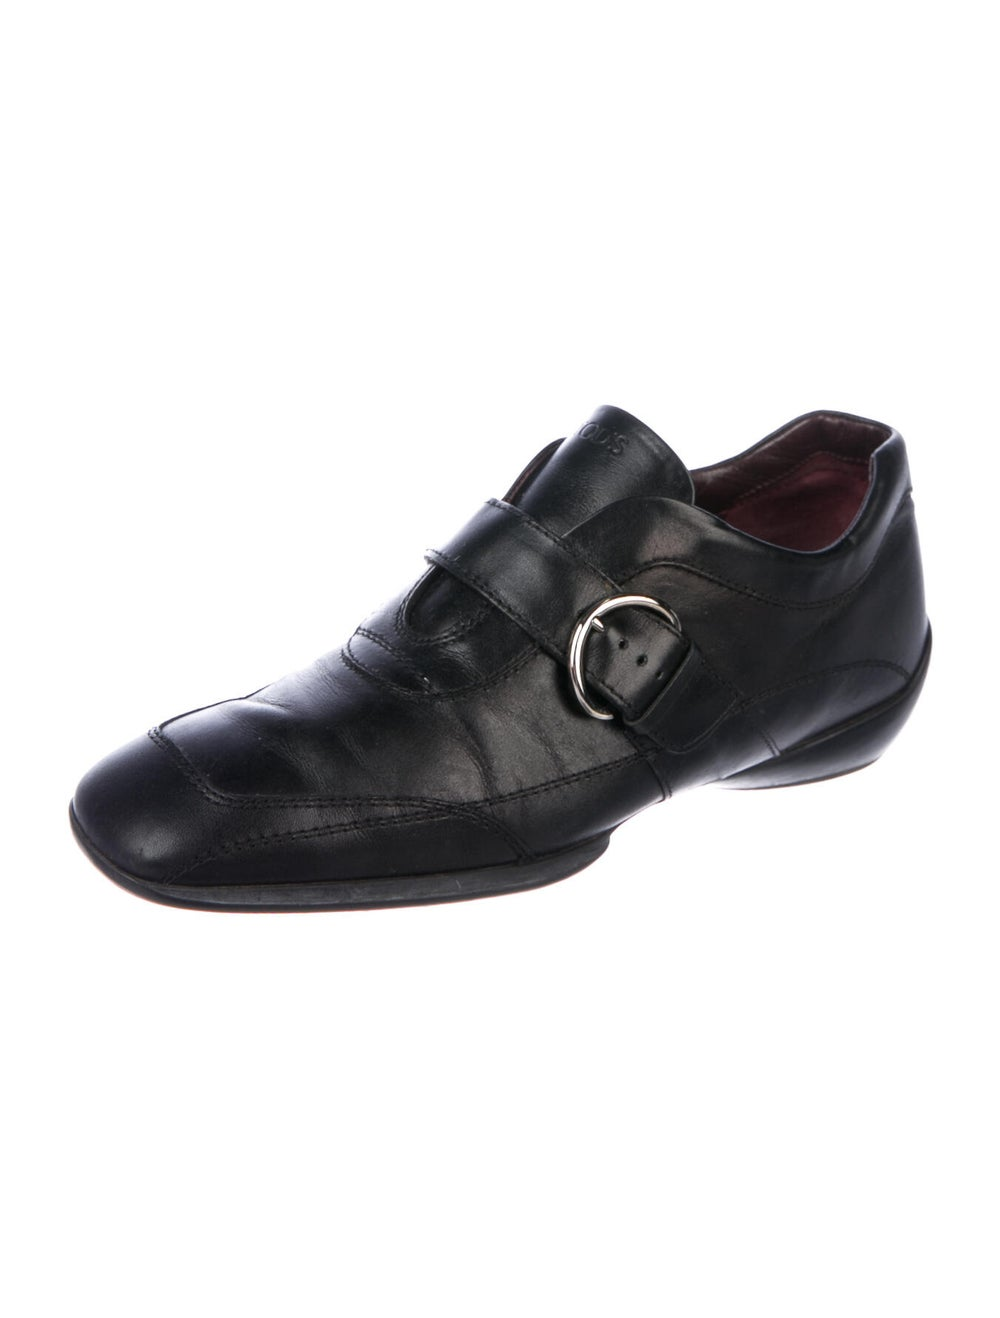 Tod's Leather Loafers Black - image 2